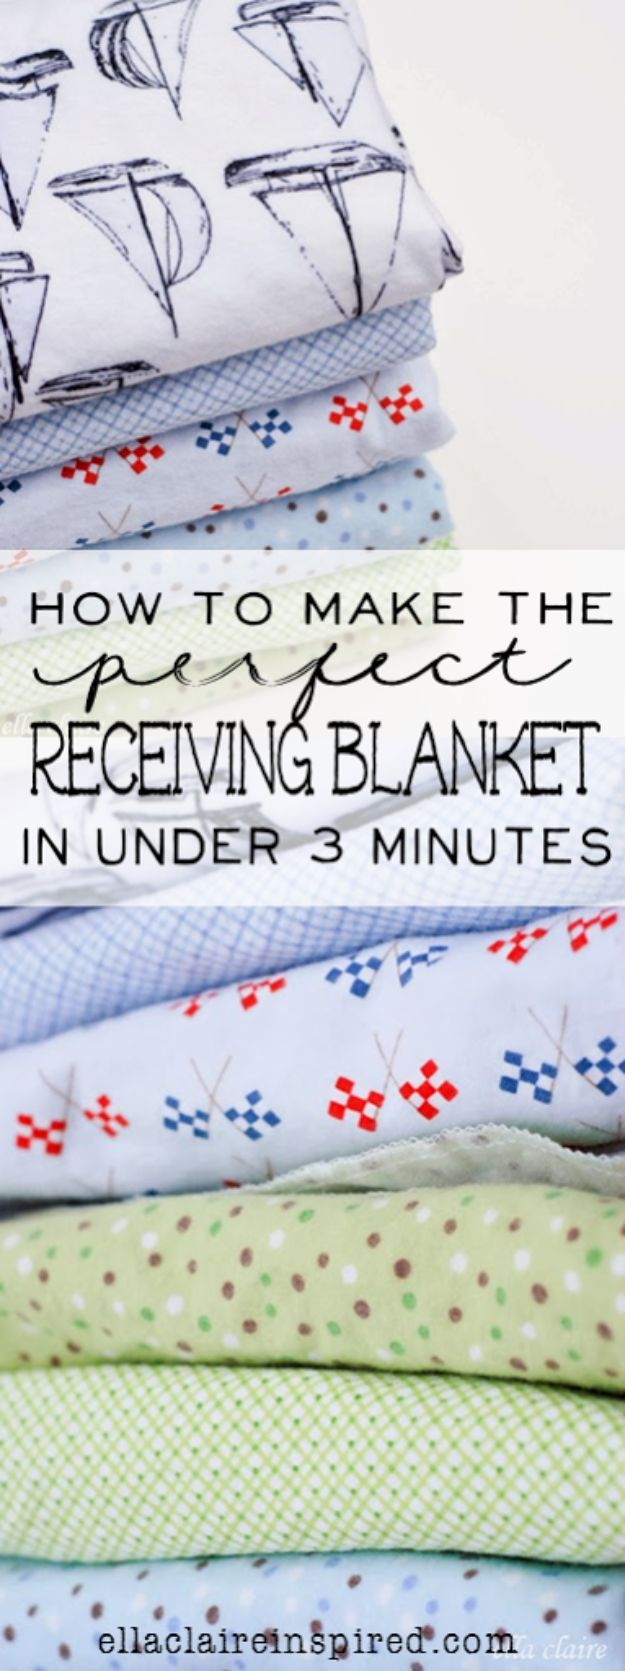 DIY Baby Blankets - Perfect Receiving Blanket In Under 3 Minutes - Easy No Sew Ideas for Minky Blankets, Quilt Tutorials, Crochet Projects, Blanket Projects for Boy and Girl - How To Make a Blanket By Hand With Fleece, Flannel, Knit and Fabric Scraps - Personalized and Monogrammed Ideas - Cute Cheap Gifts for Babies http://diyjoy.com/diy-baby-blankets